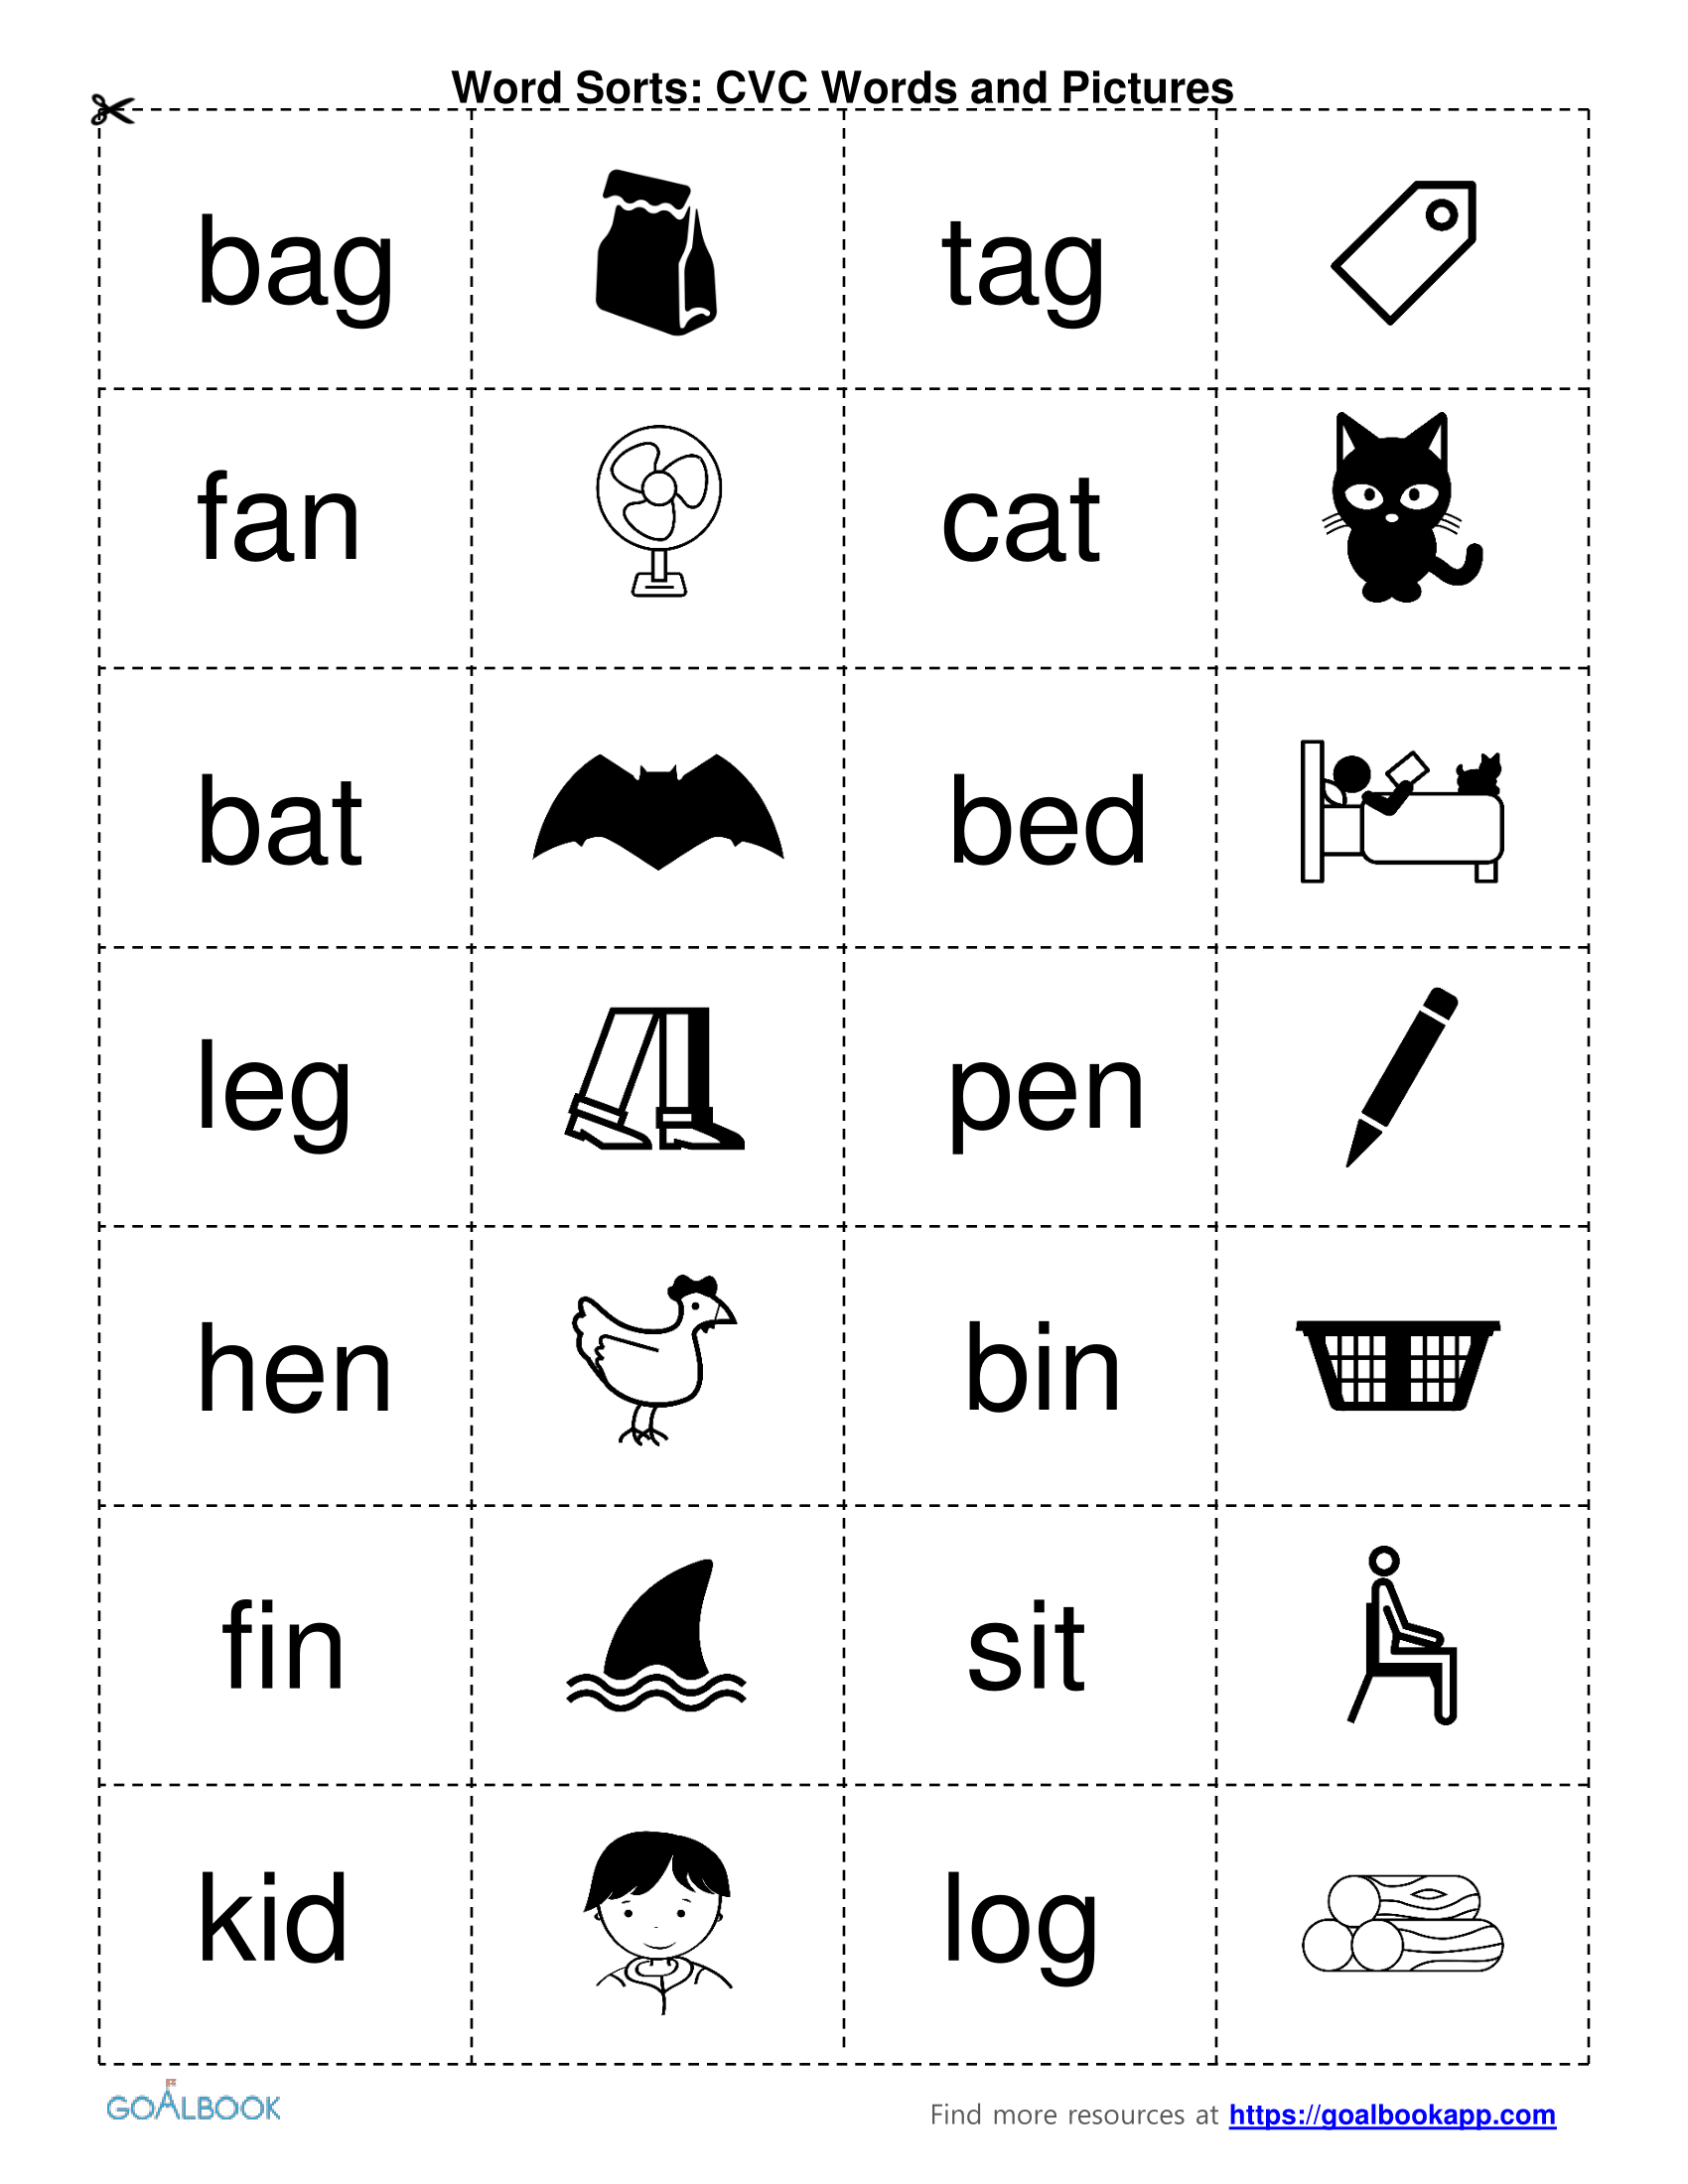 photograph relating to Word Sorts Printable known as Phrase Kinds UDL Suggestions